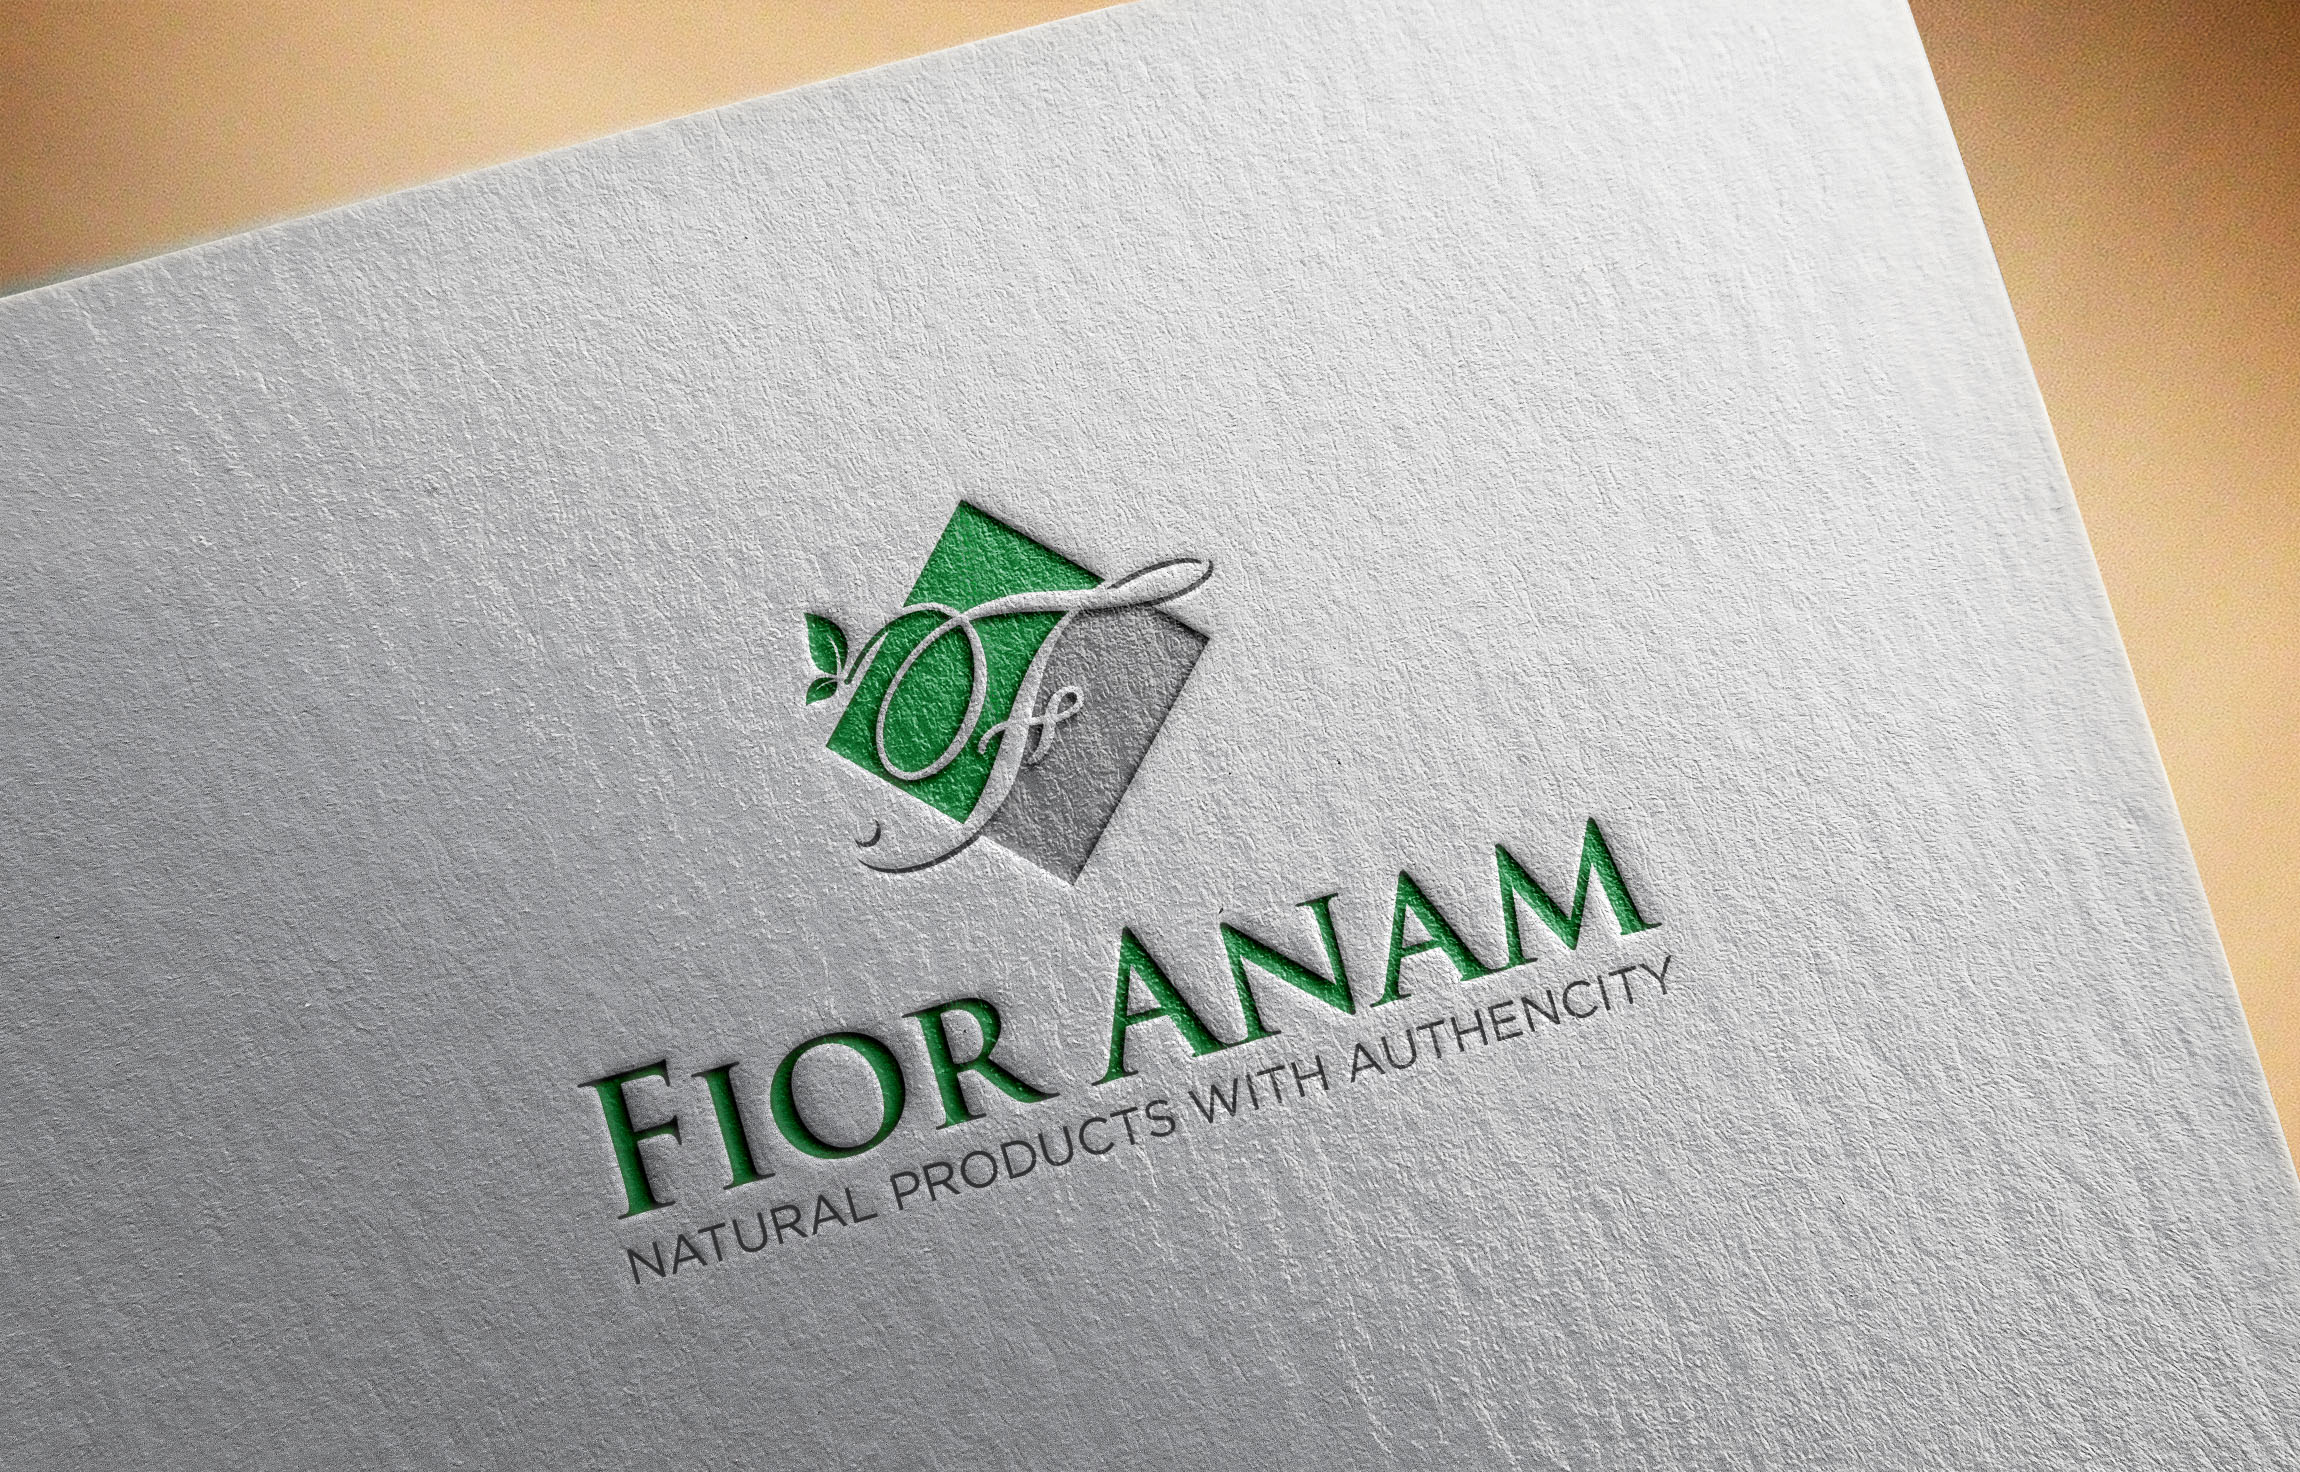 Logo Design by Raymond Garcia - Entry No. 10 in the Logo Design Contest Creative Logo Design for Fior Anam.